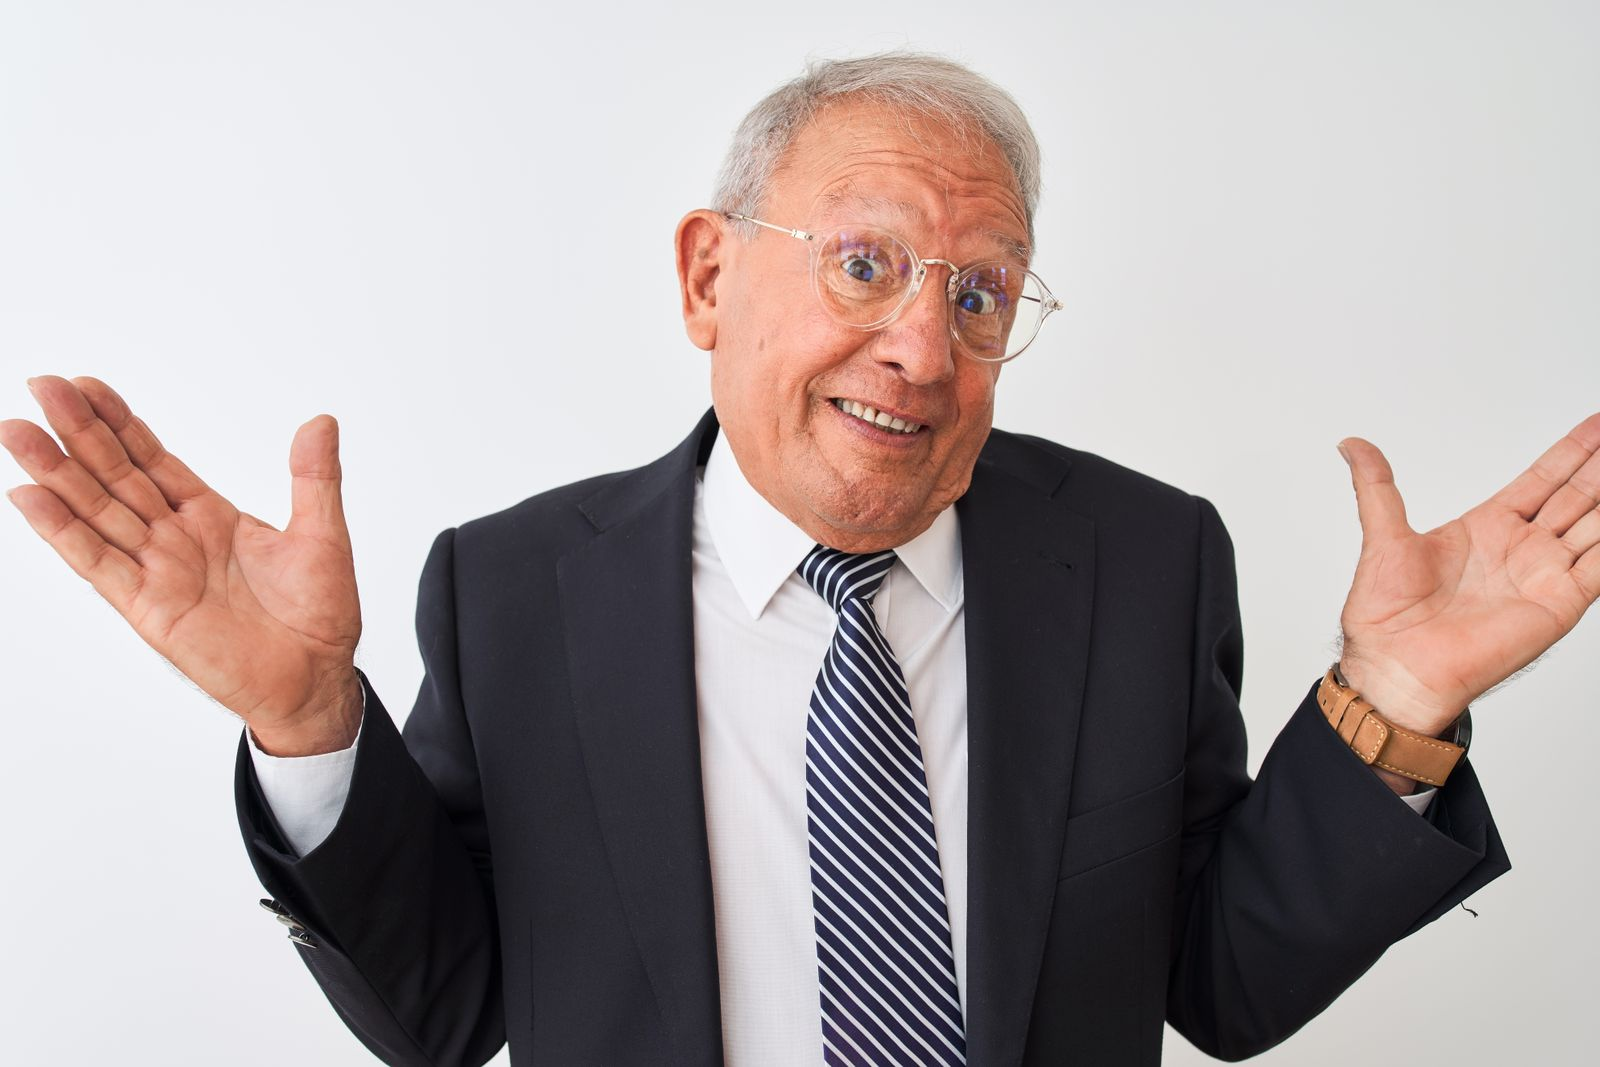 Senior grey-haired businessman wearing suit and glasses over isolated white background clueless and confused expression with arms and hands raised. Doubt concept.